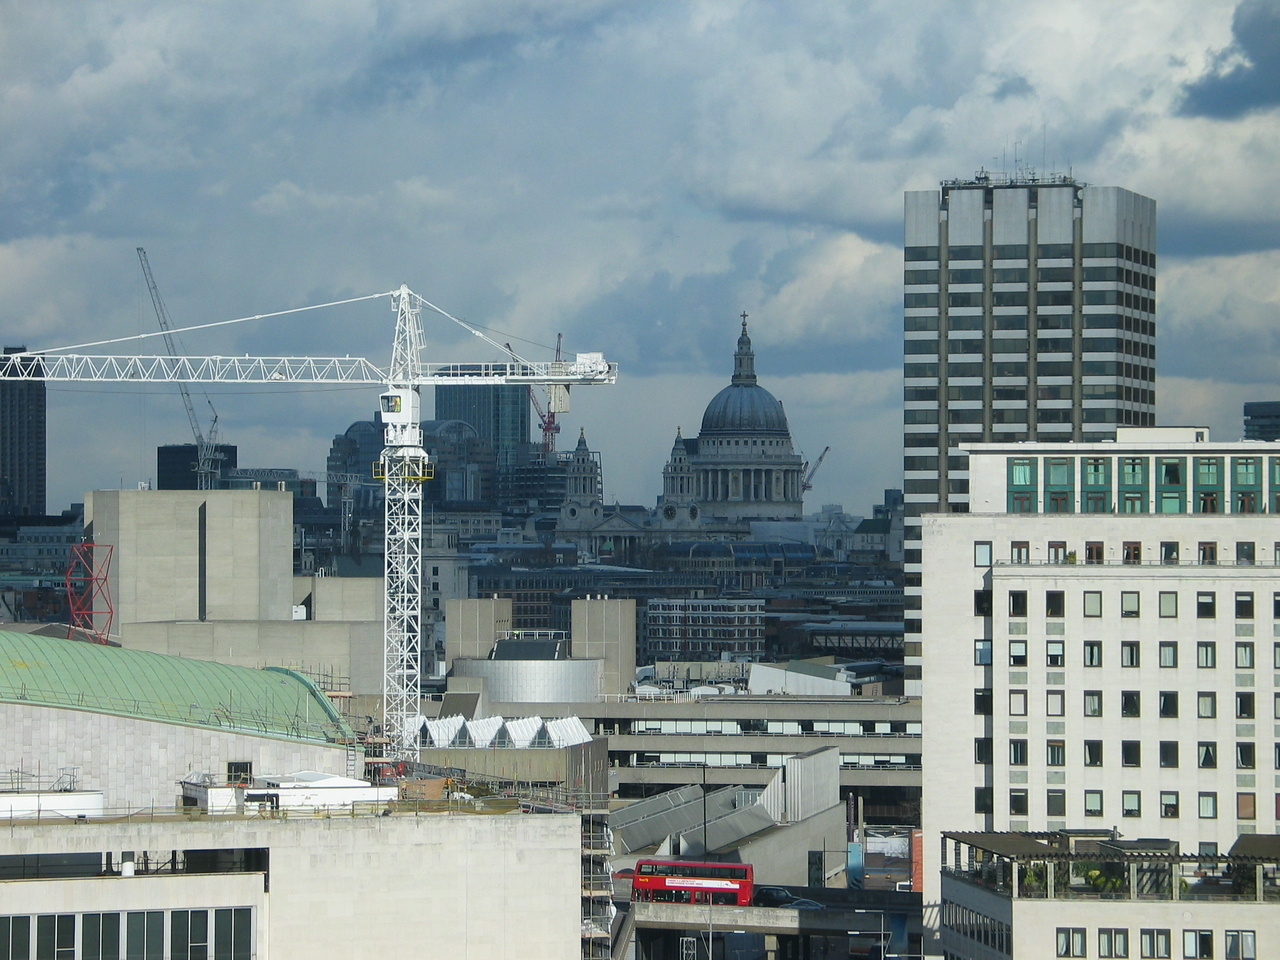 <b>St. Pauls Cathedral as seen from inside the London Eye.</b>